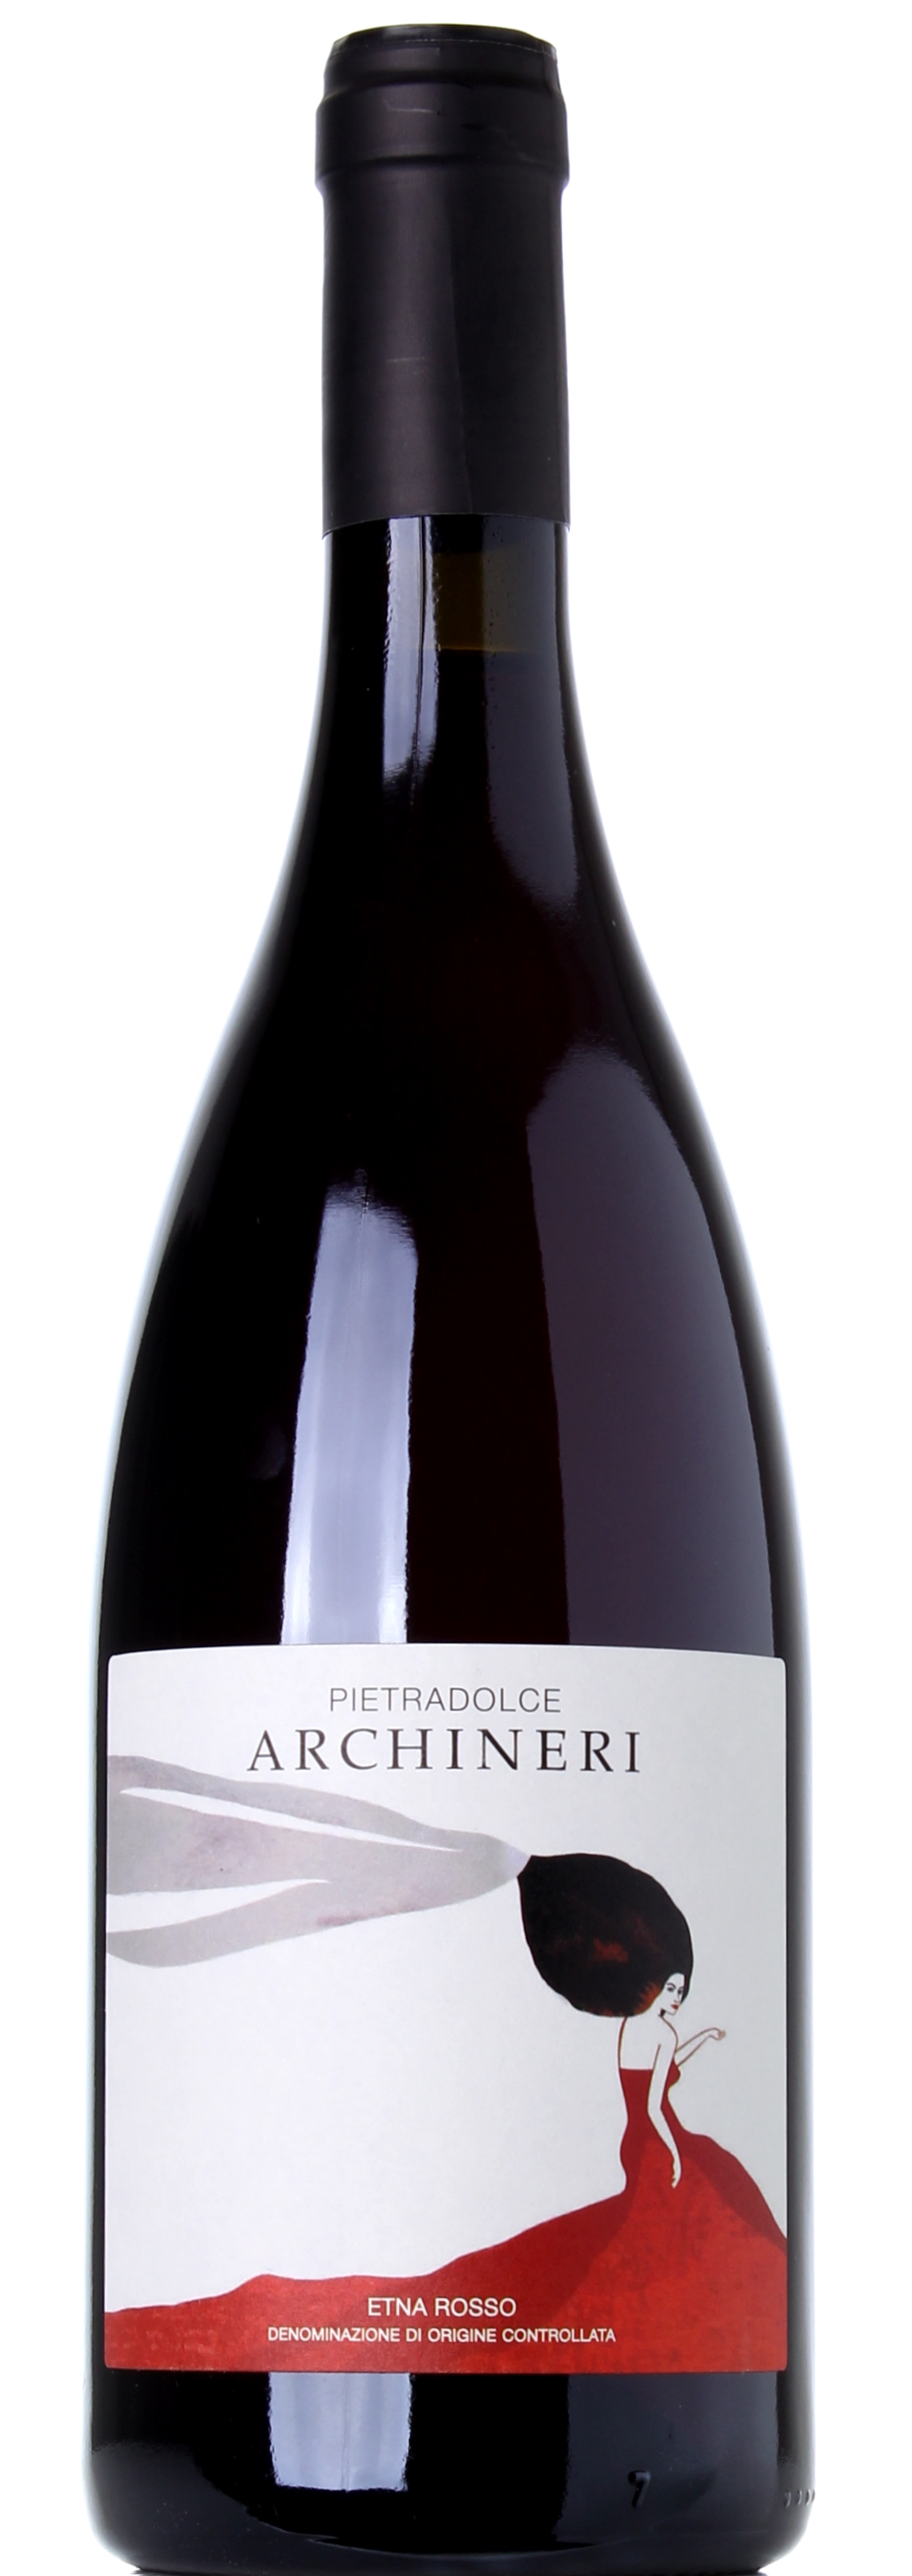 PIETRADOLCE ARCHINERI ETNA ROSSO 2013